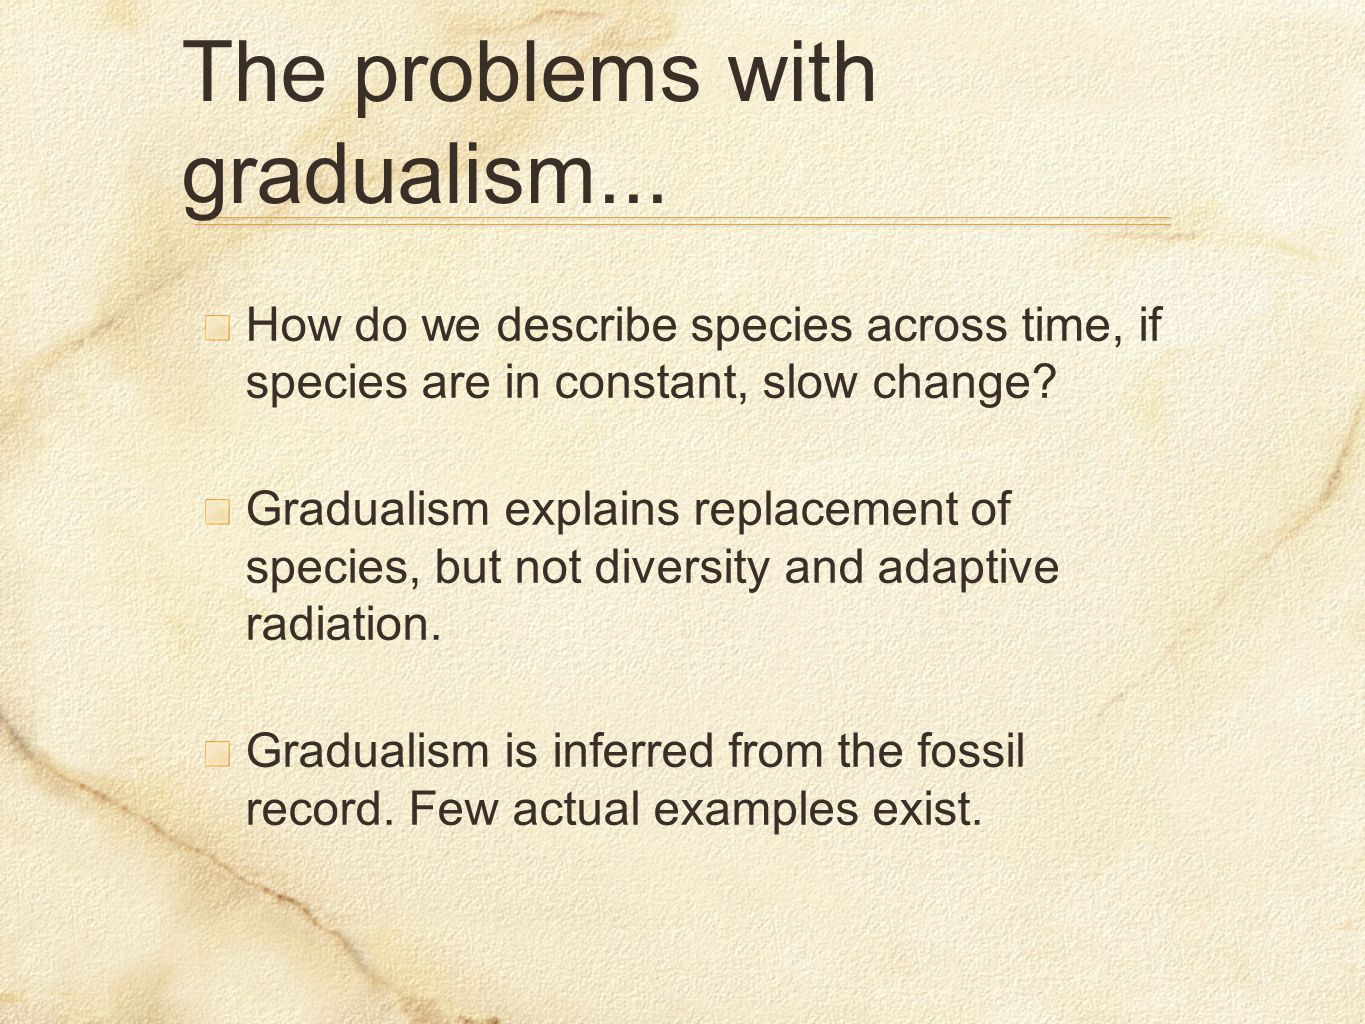 The problems with gradualism...